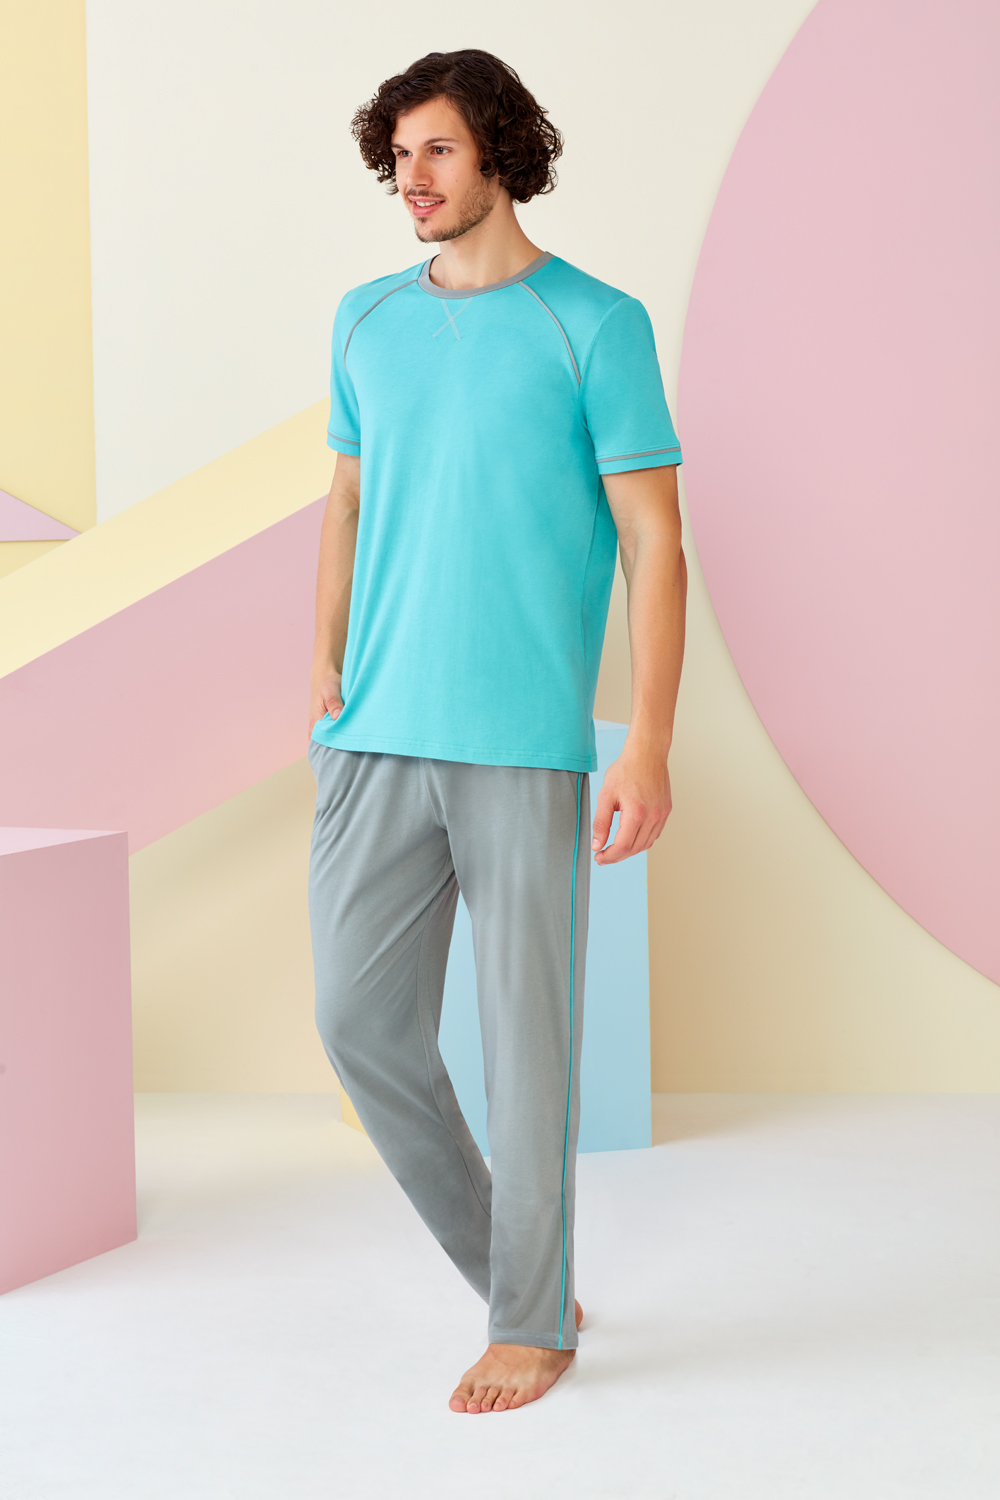 4504 - Top & Pants Set